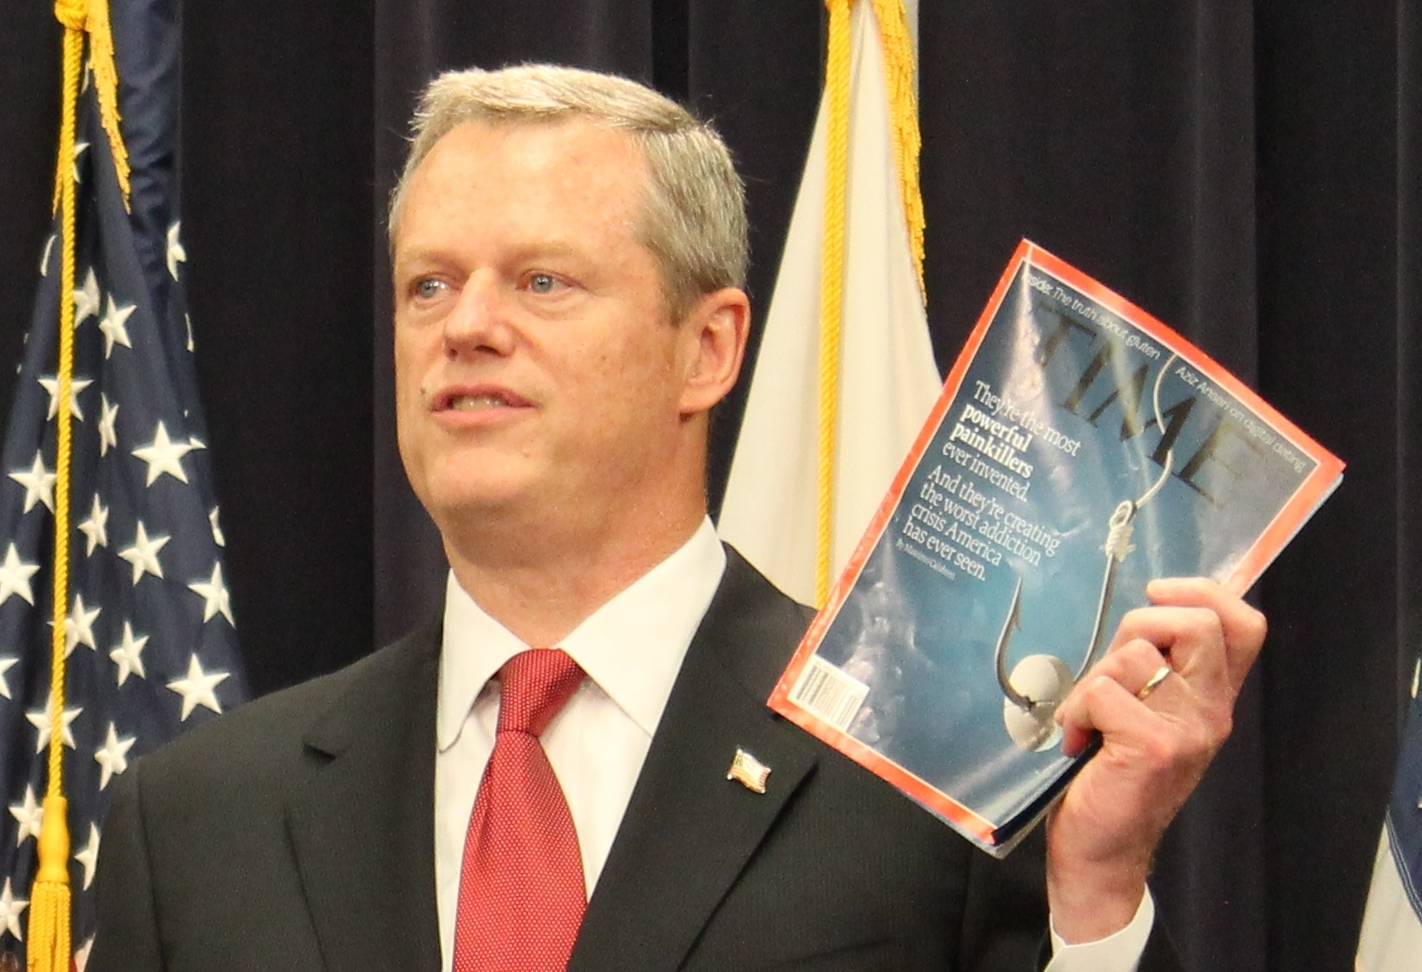 Baker plans to unveil a bill and executive actions